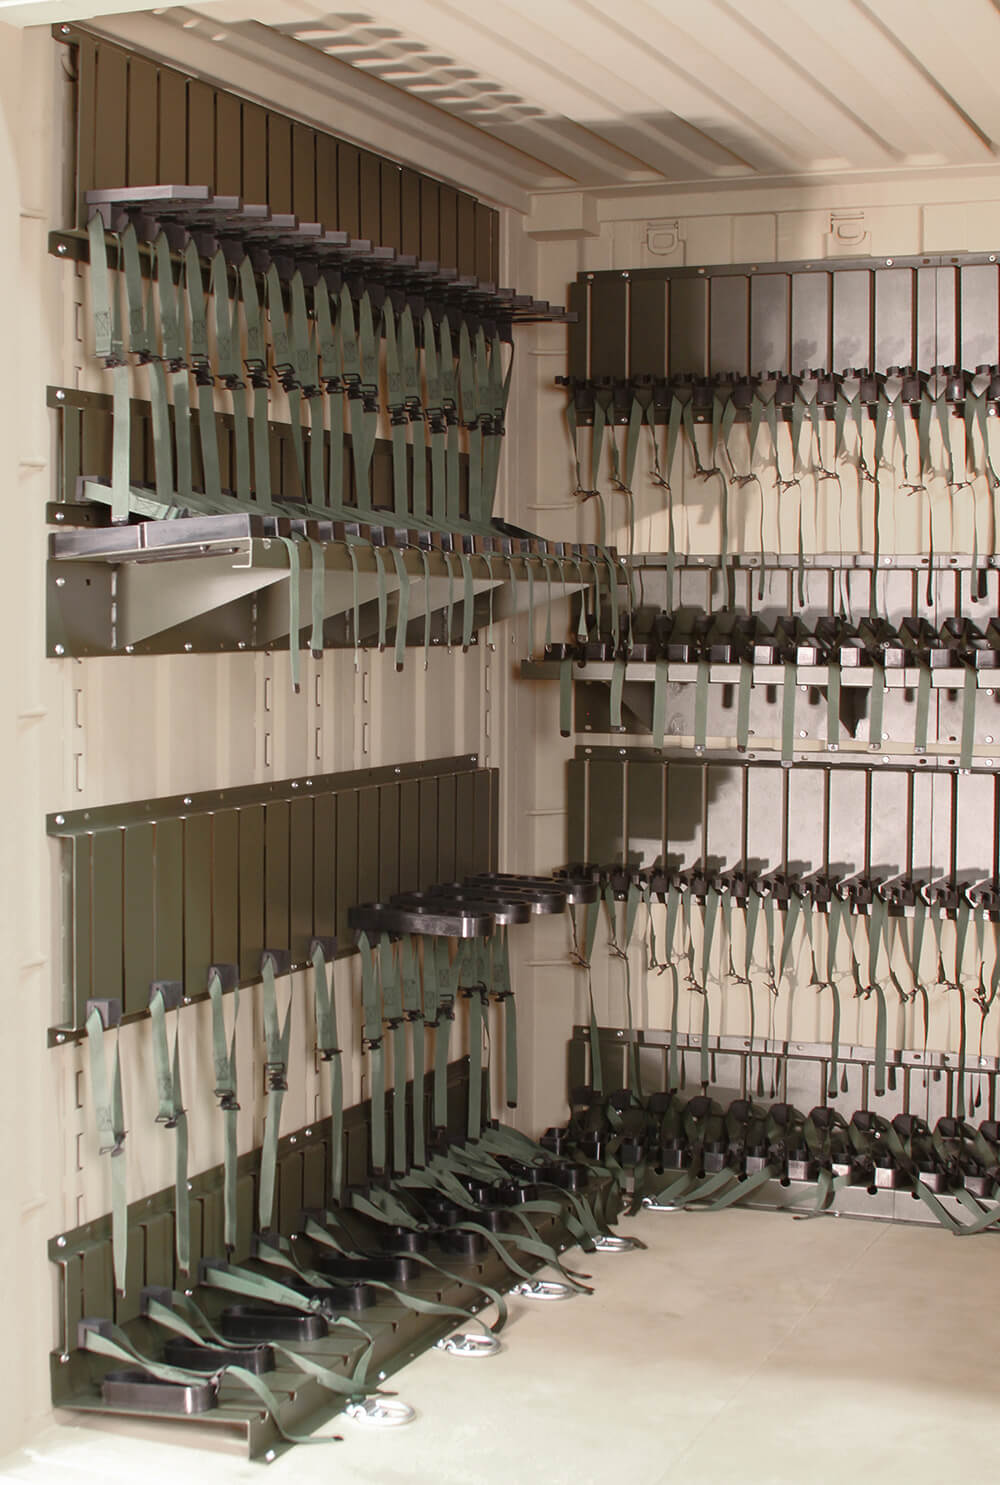 The Universal Expeditionary™ Weapons Storage System (TriCON Weapon Storage System) Maximized Weapon Storage